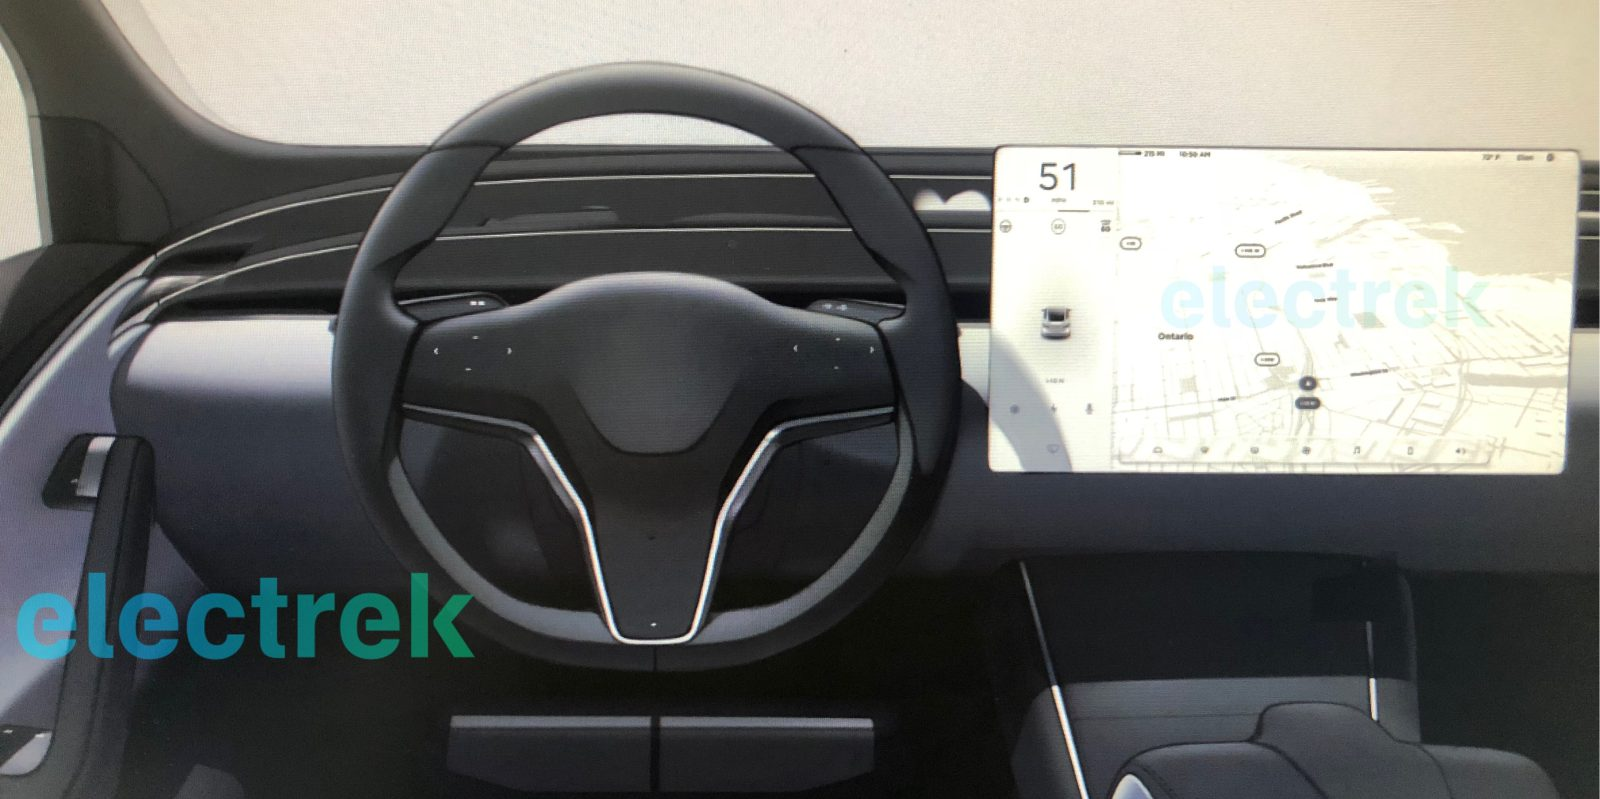 medium resolution of exclusive first look at tesla model s and model x interior refresh going spartan like model 3